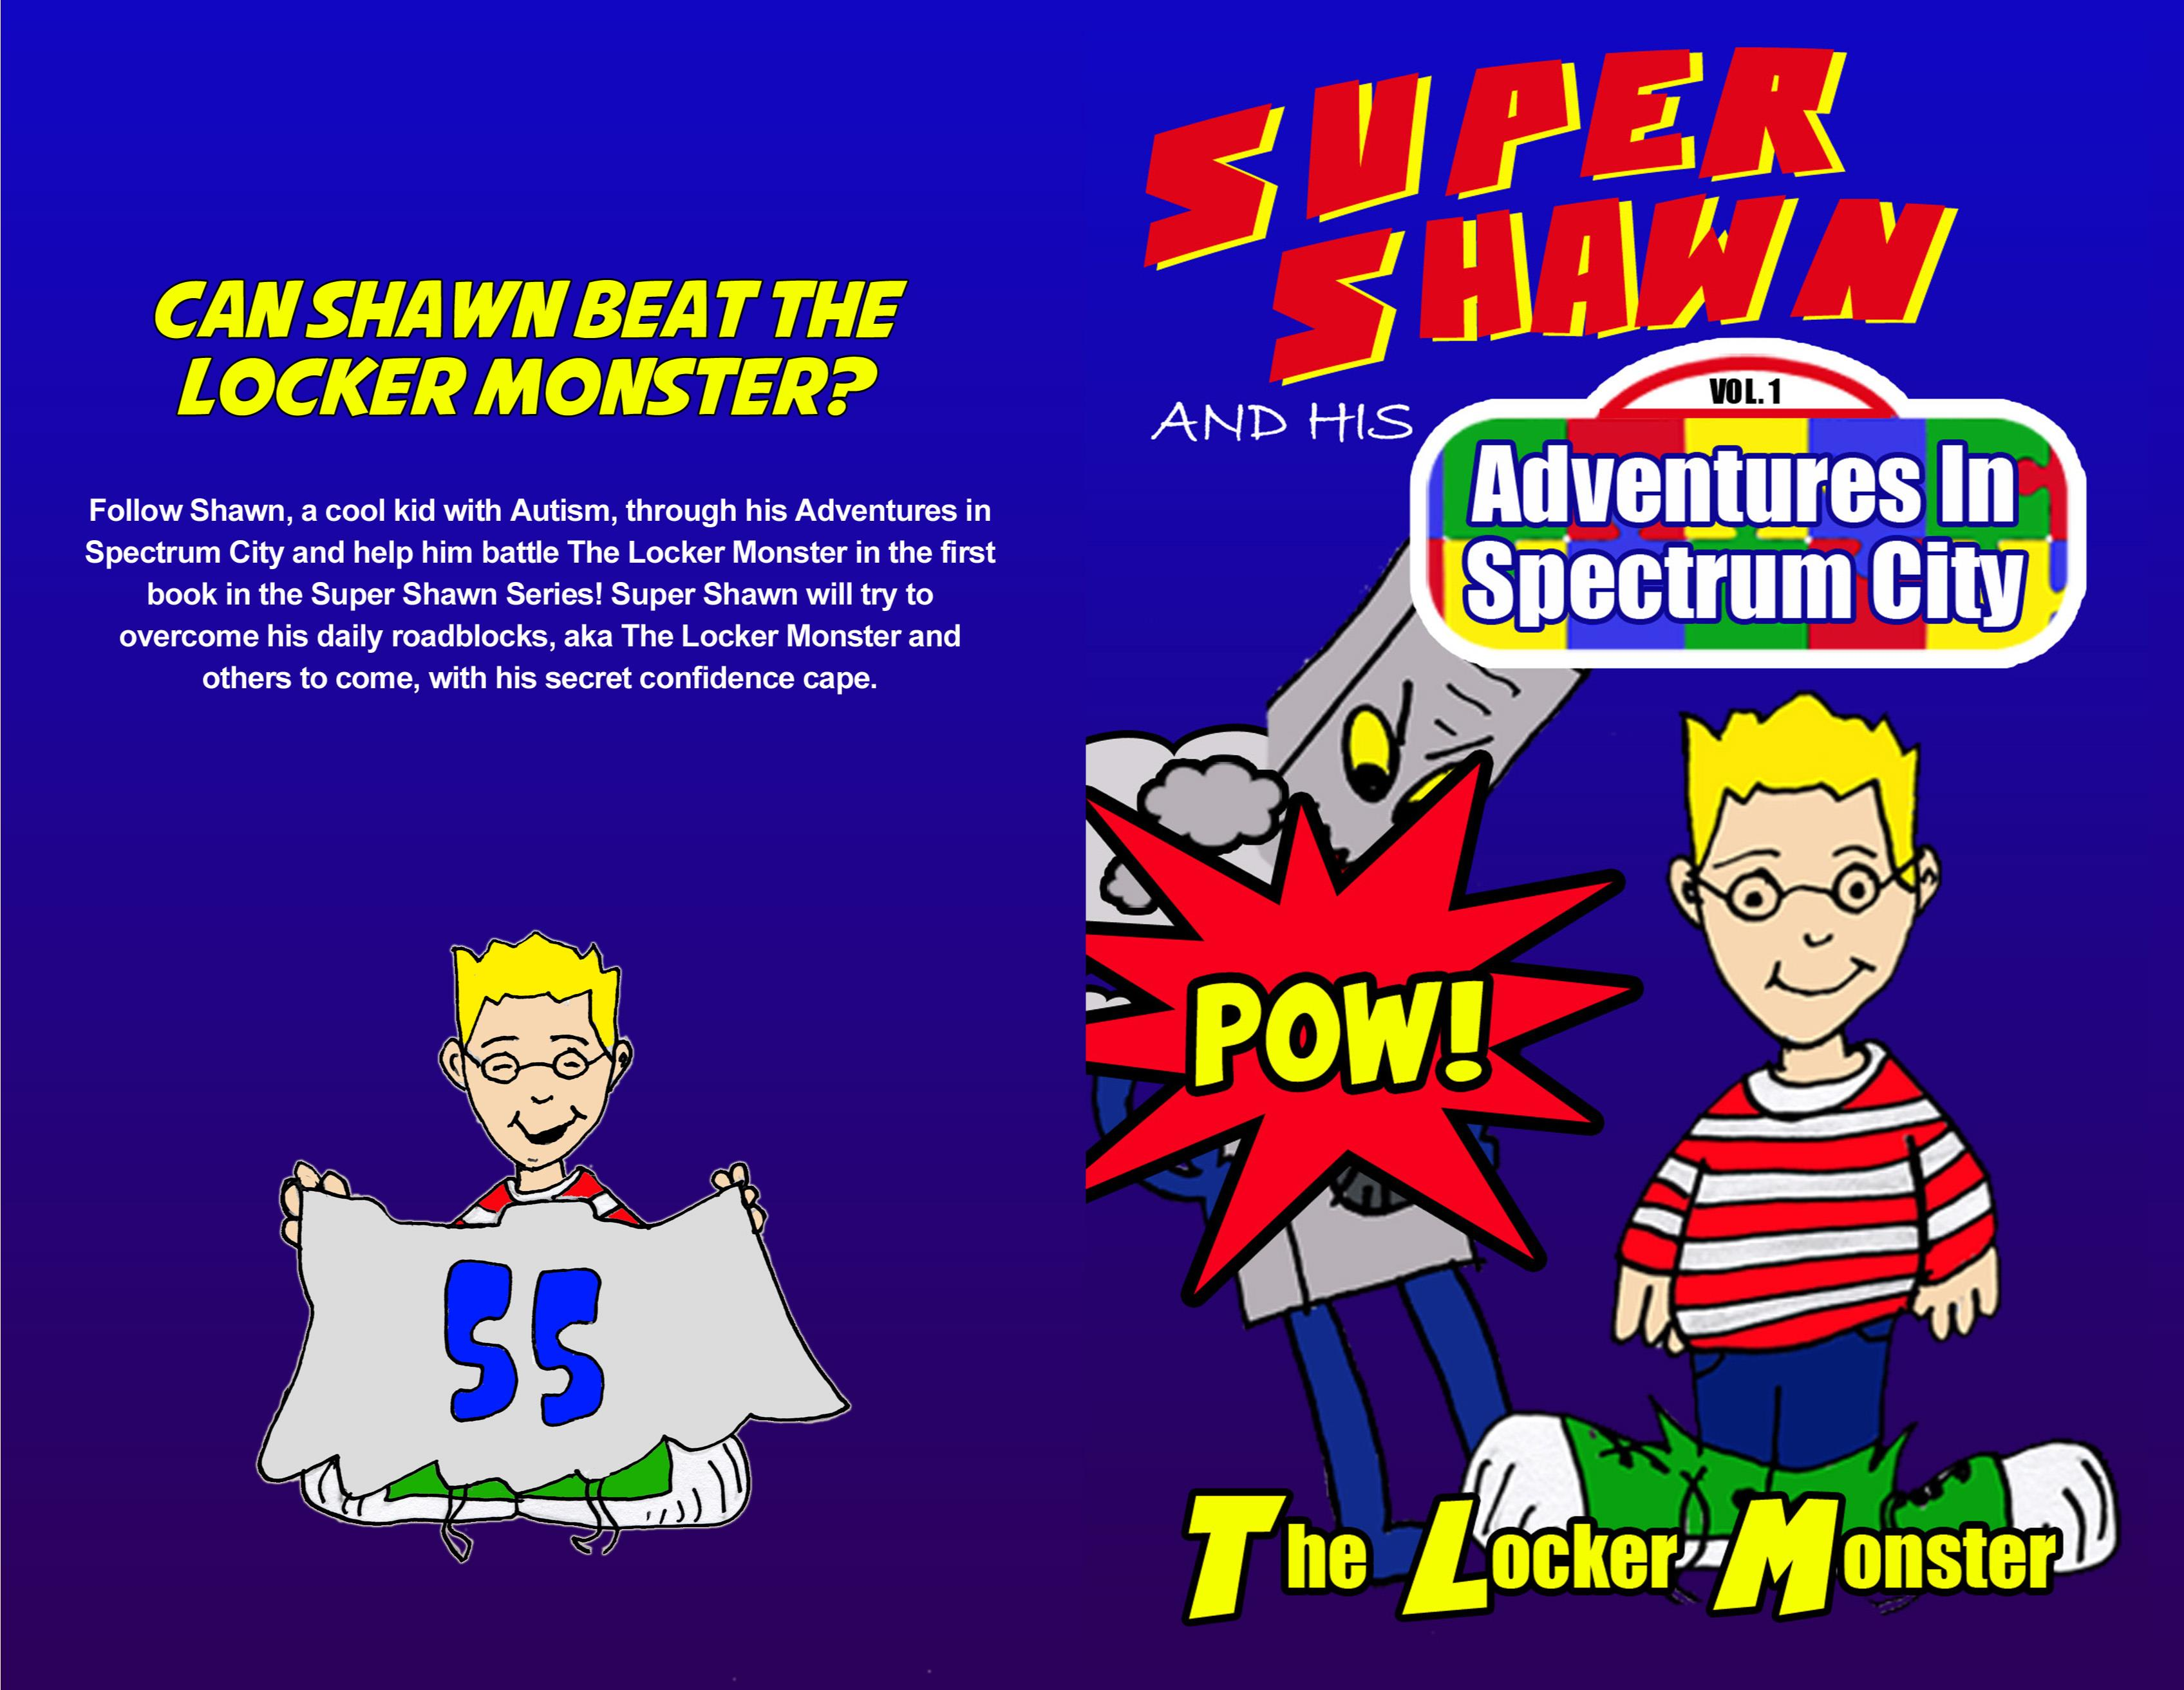 Super Shawn and his Adventures in Spectrum City: The Locker Monster cover image